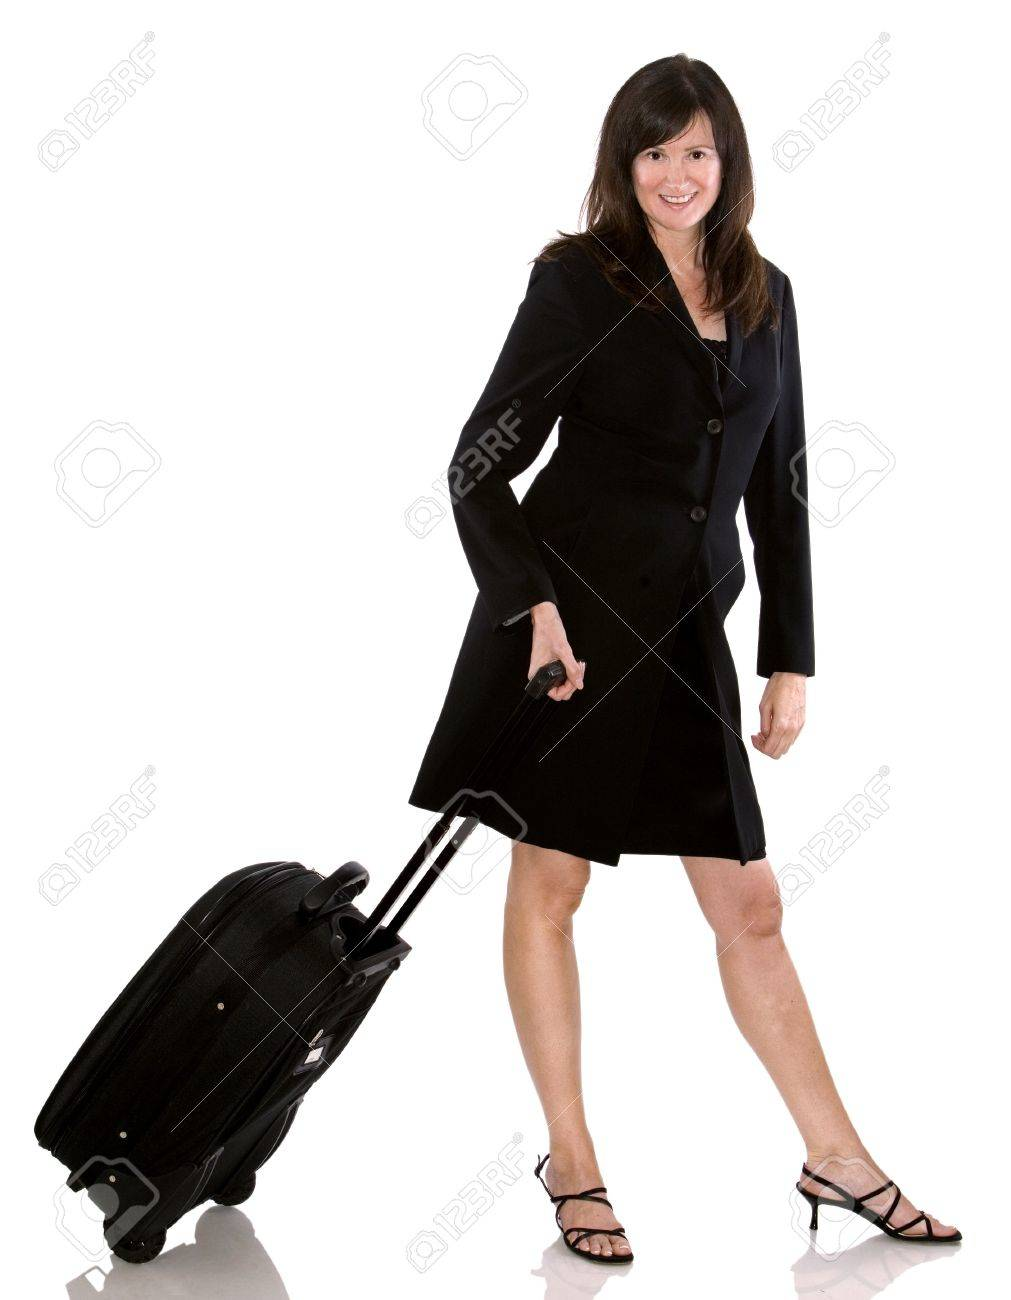 Older Business Woman With Luggage On White Background Stock Photo ...